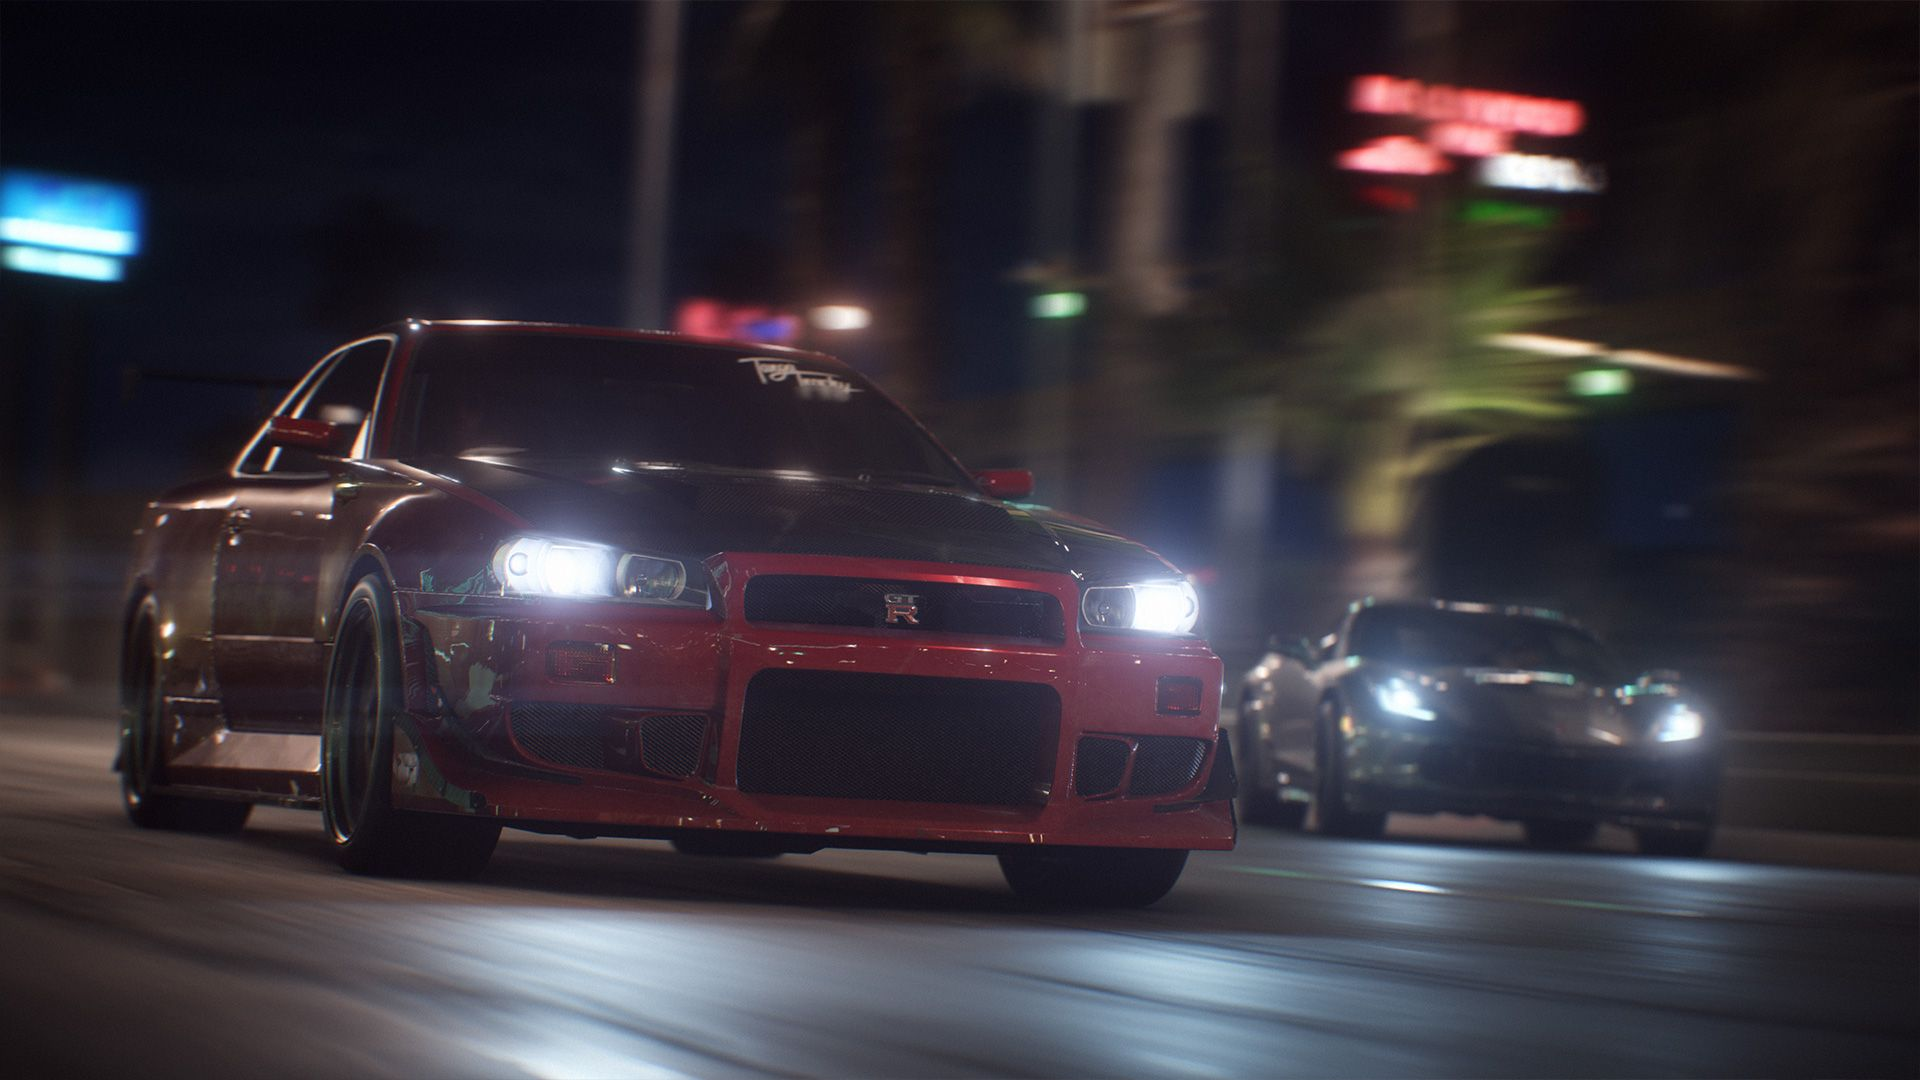 need_for_speed_payback_bring_down_the_house_1080p_clean_r34gtr_screenshot4_1080.jpg